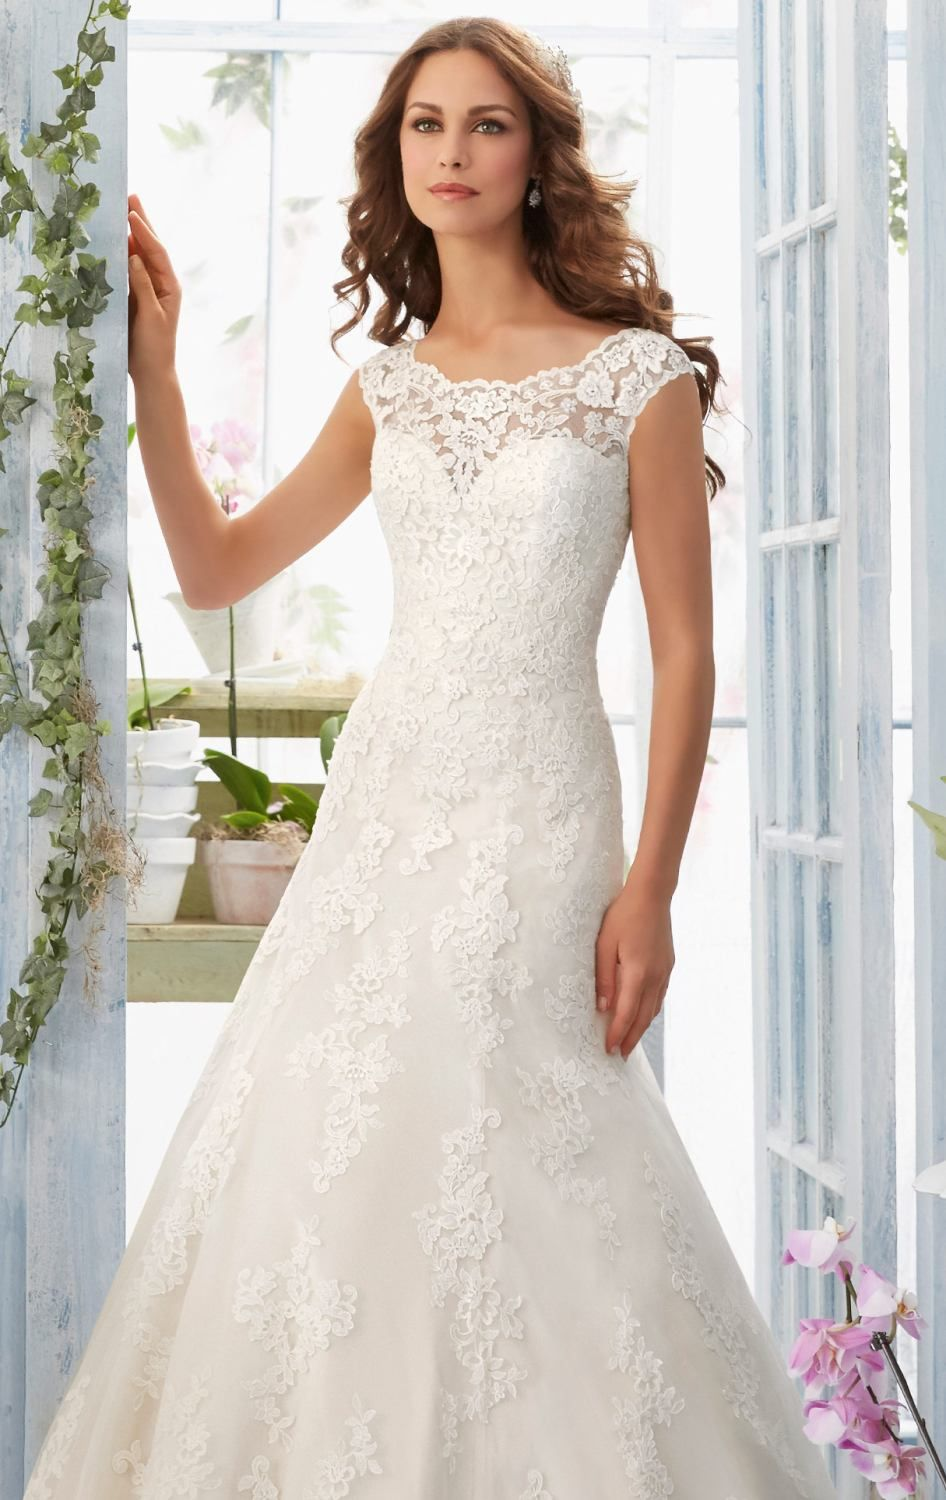 Color embroidered wedding dress  Captivate the heart of your man on your wedding day and beyond in